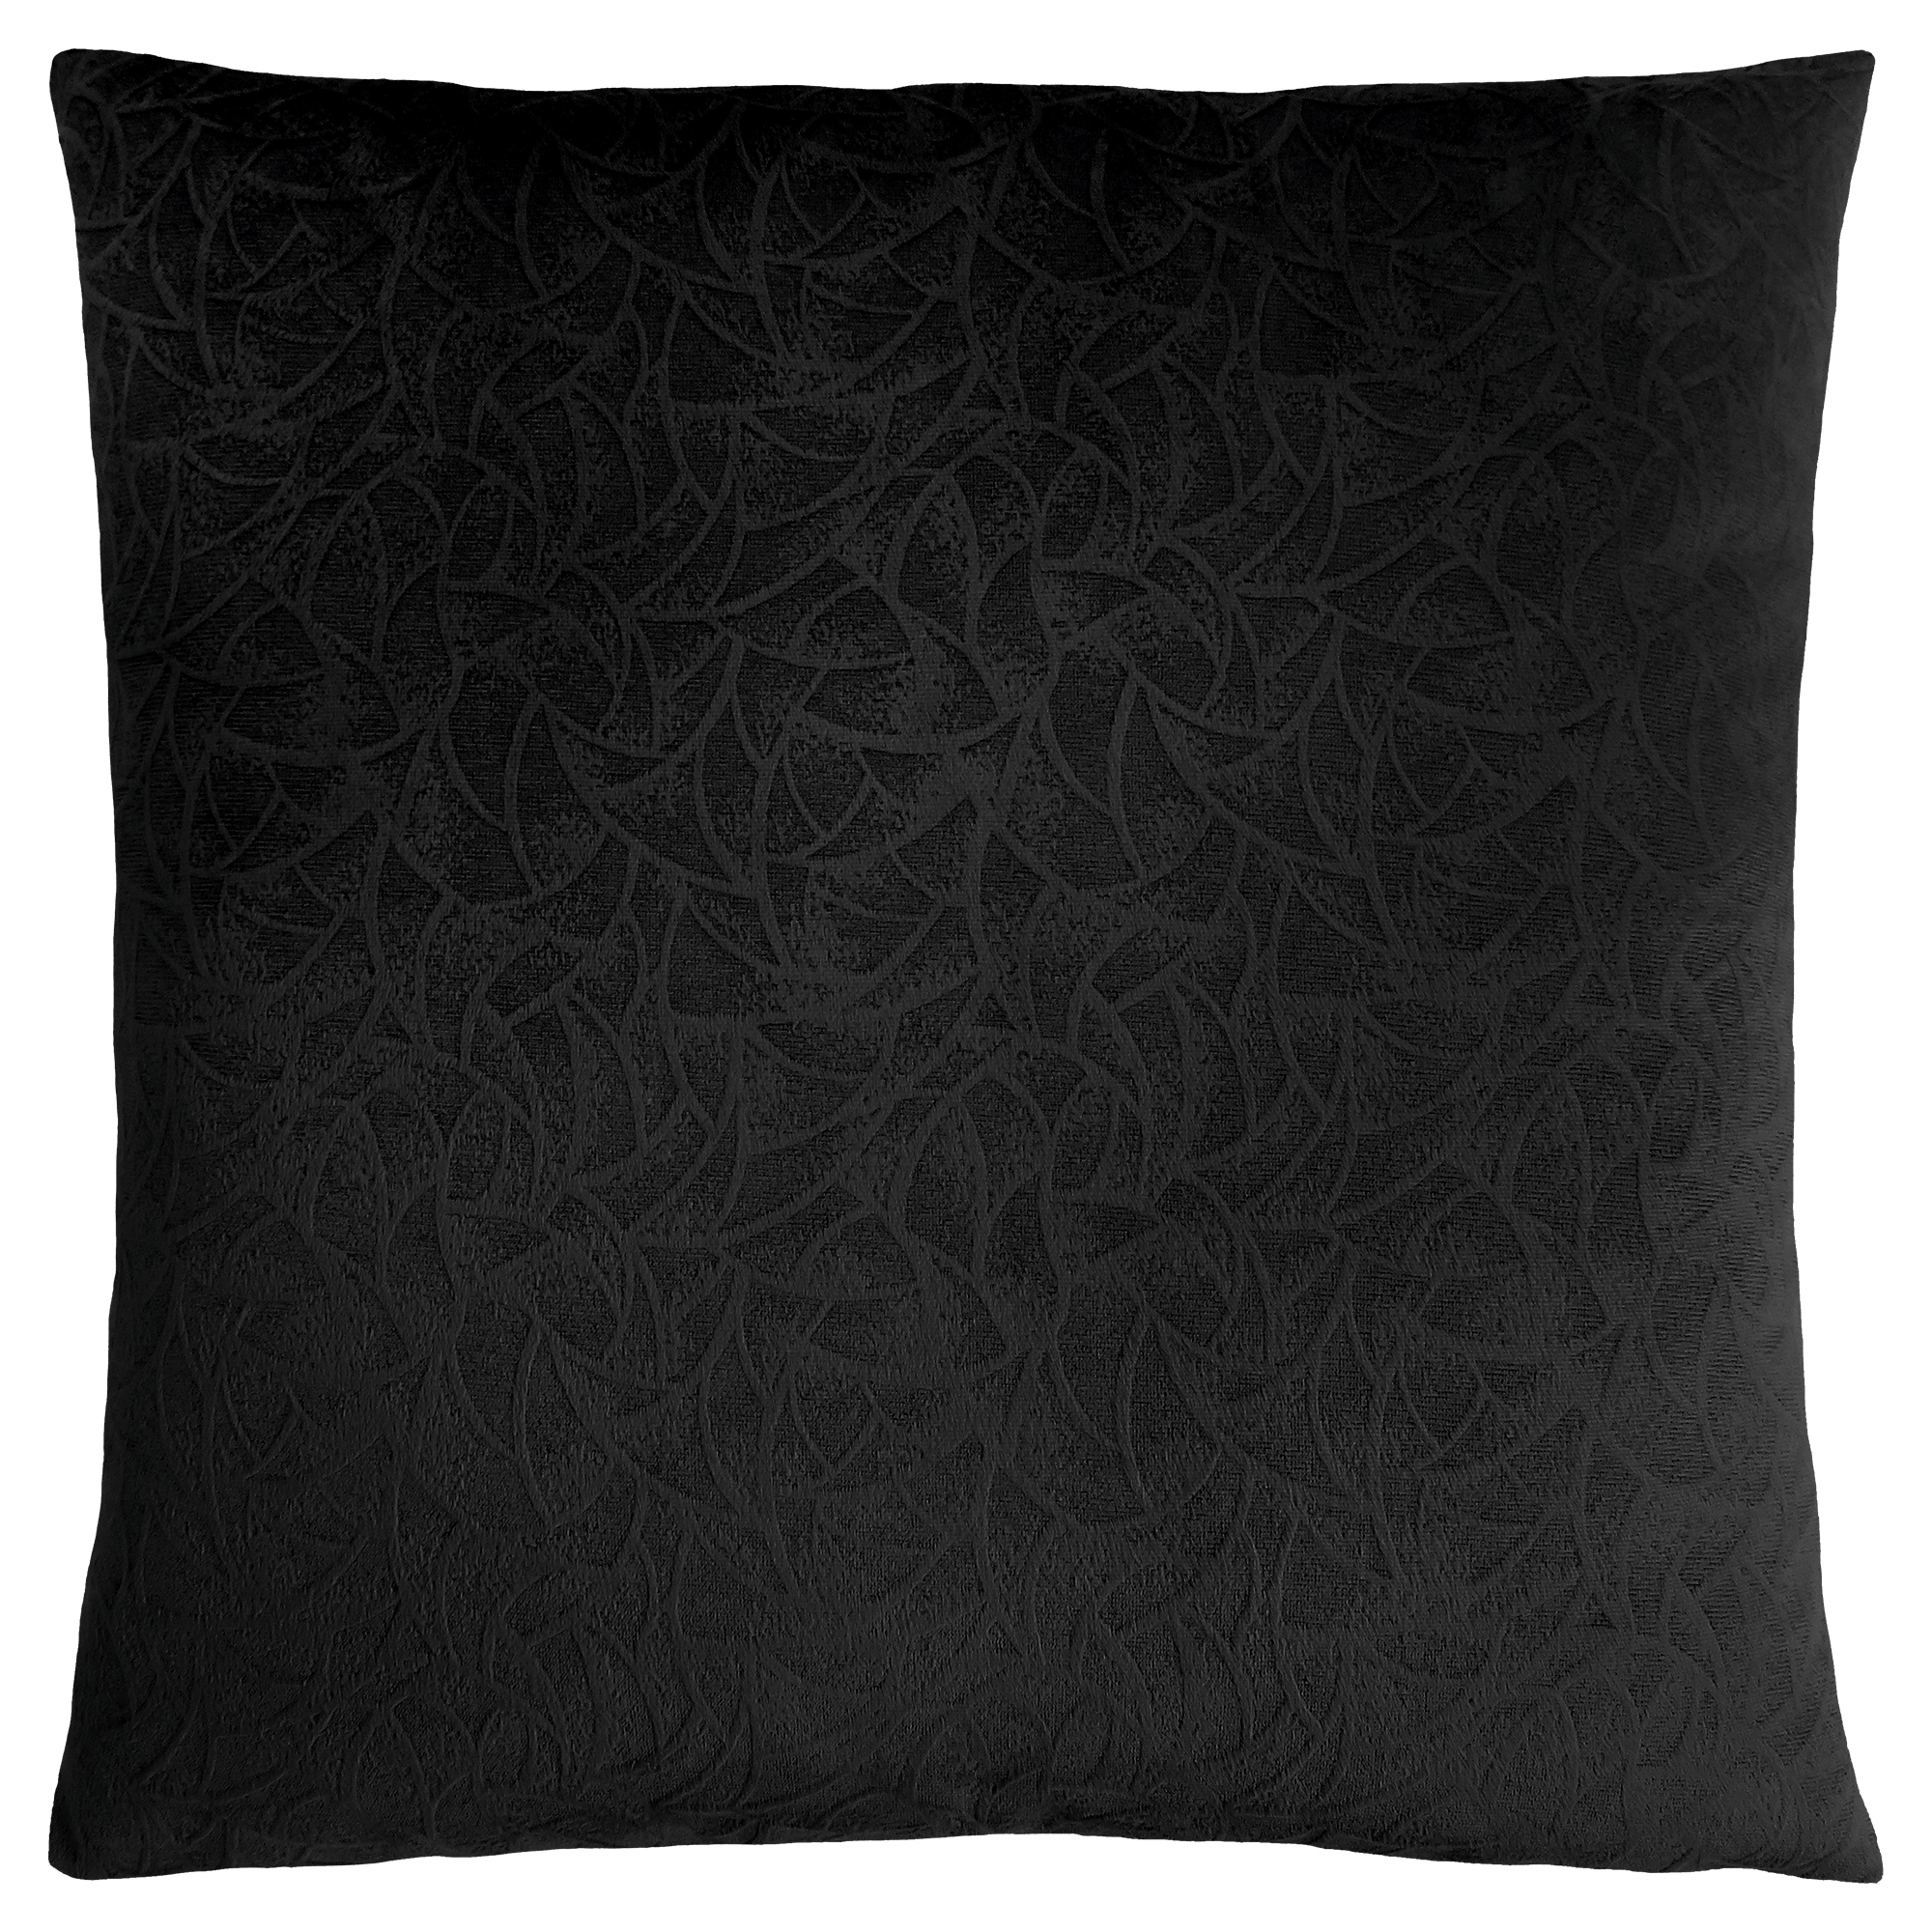 "PILLOW - 18""X 18"" / BLACK FLORAL VELVET / 1PC"